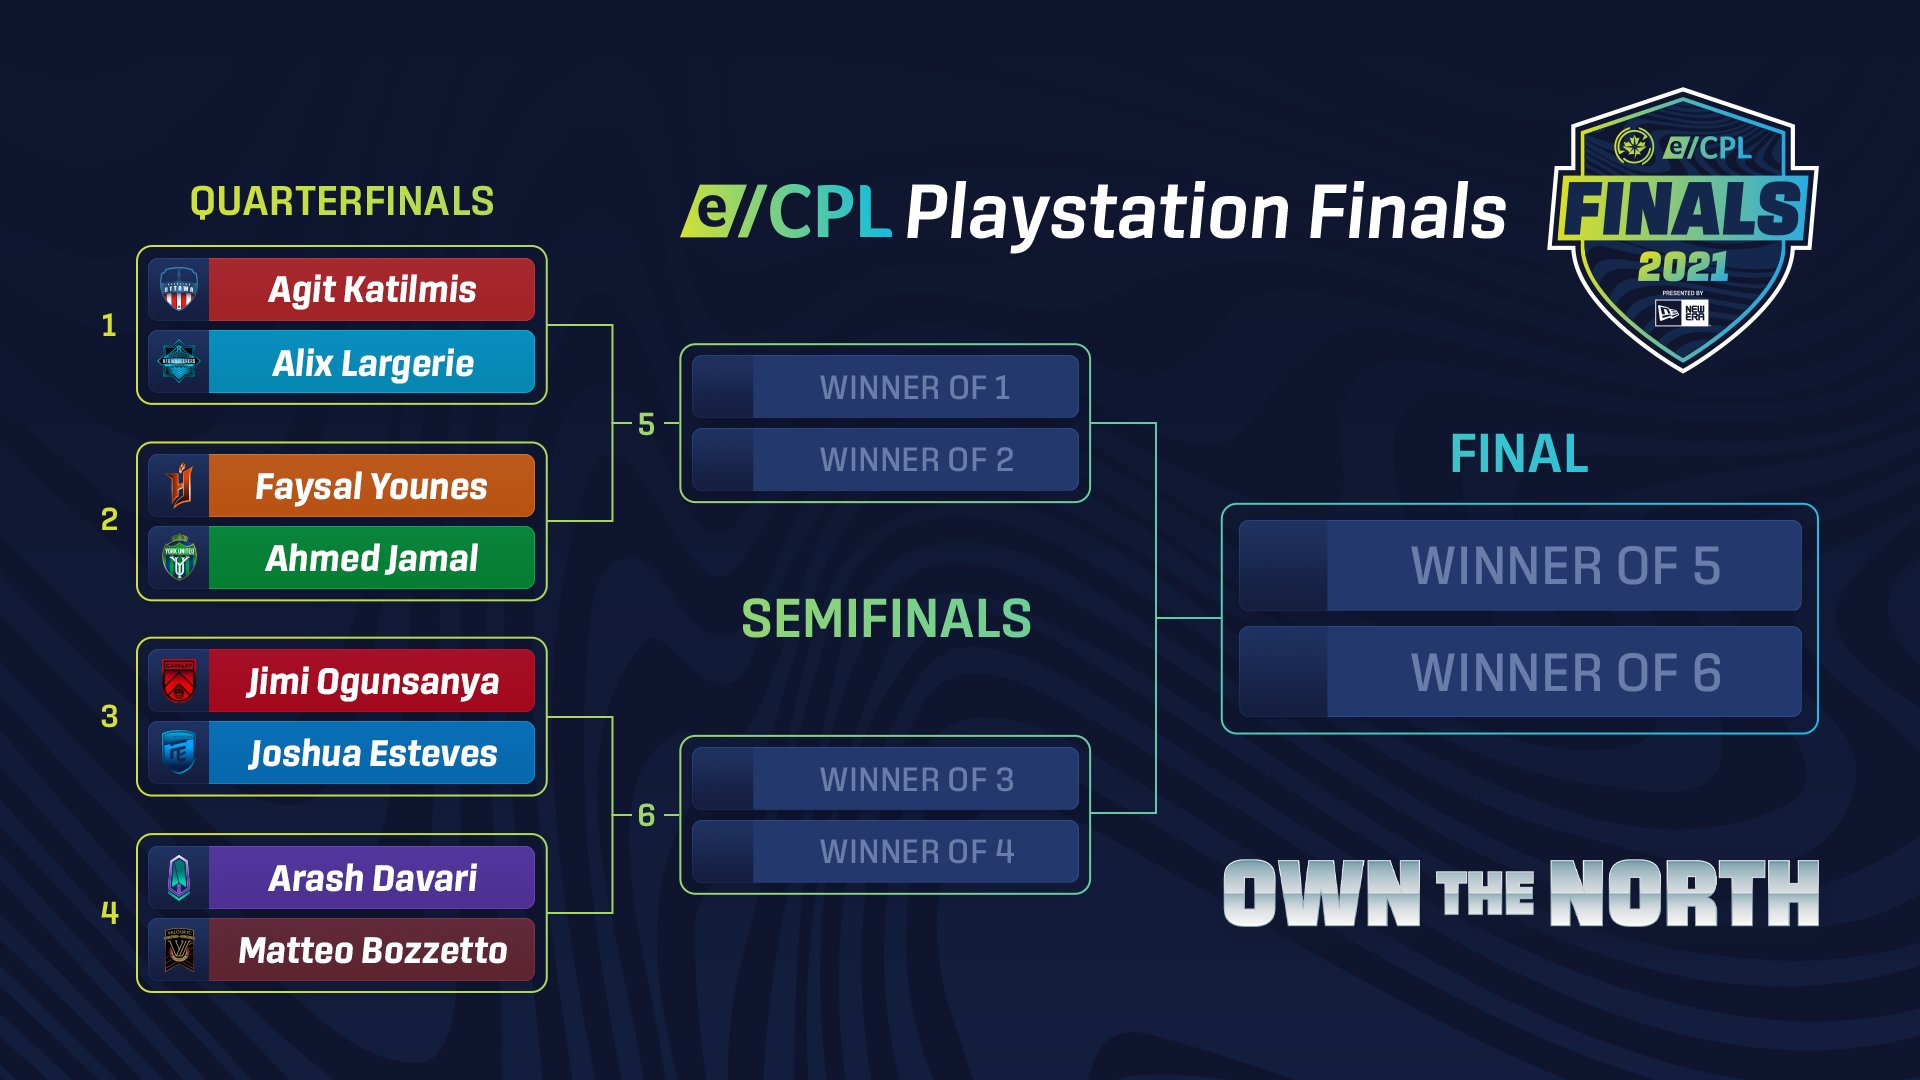 eCPL Own The North PS4 bracket.